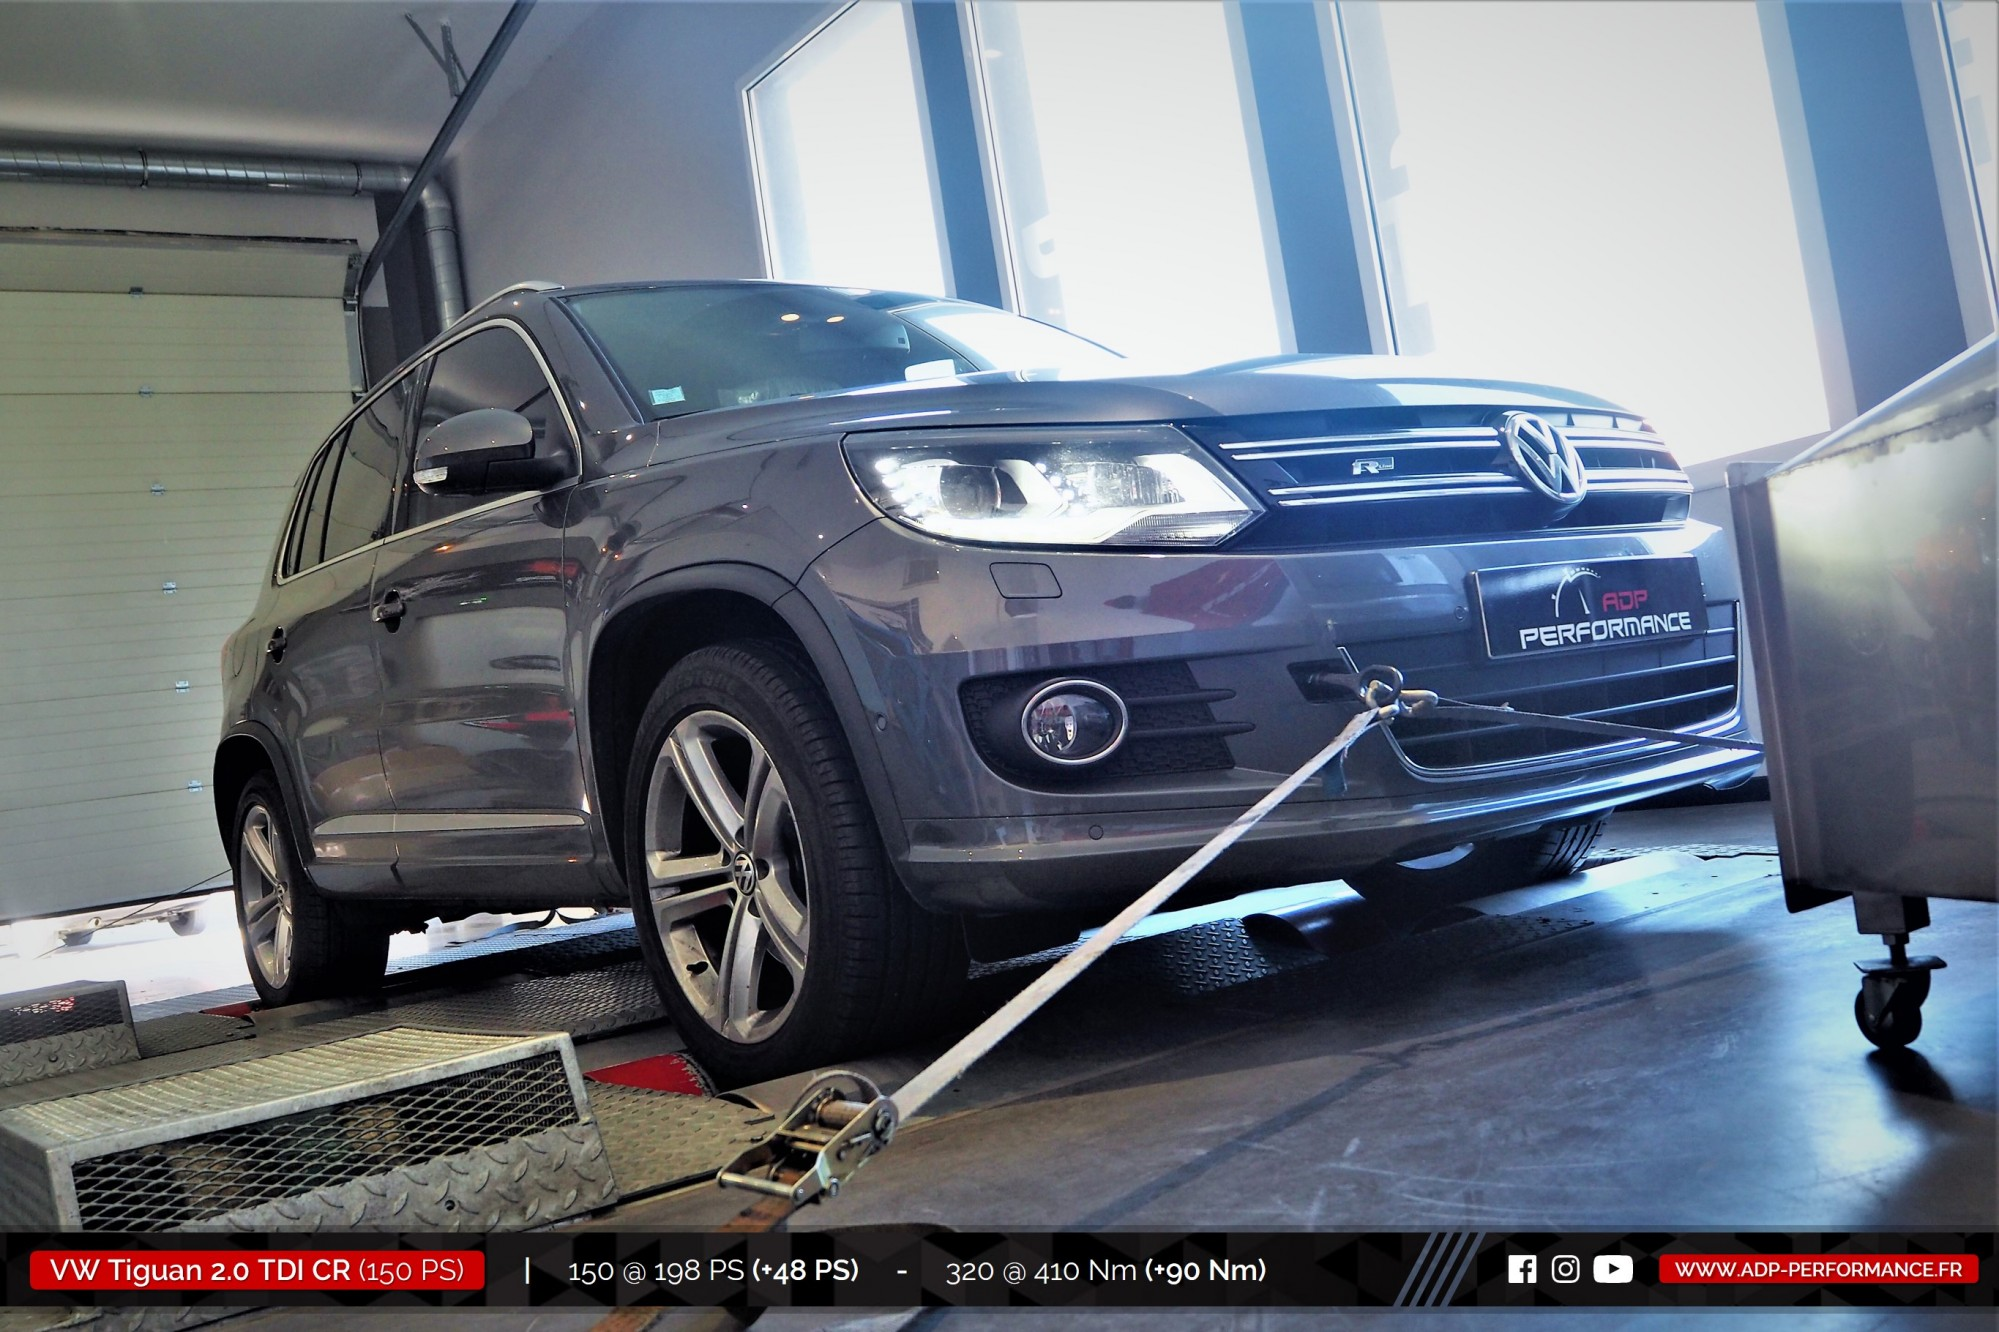 volkswagen tiguan 2016 diesel 2 0 tdi cr 150 cv reprogrammation de votre vehicule. Black Bedroom Furniture Sets. Home Design Ideas